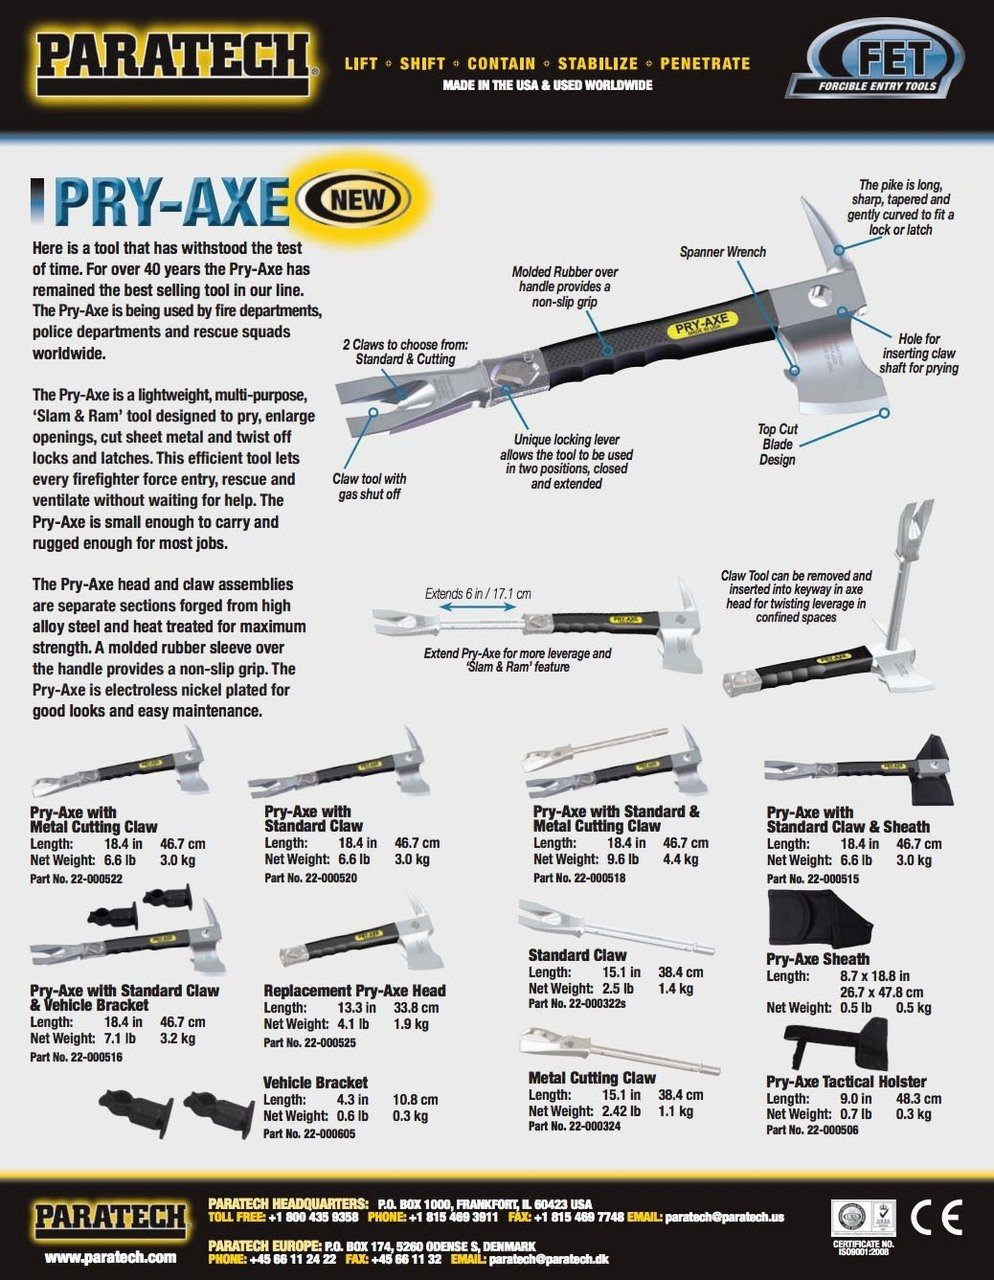 Paratech 22-000522 Pry Axe with Metal Cutting Claw by Paratech